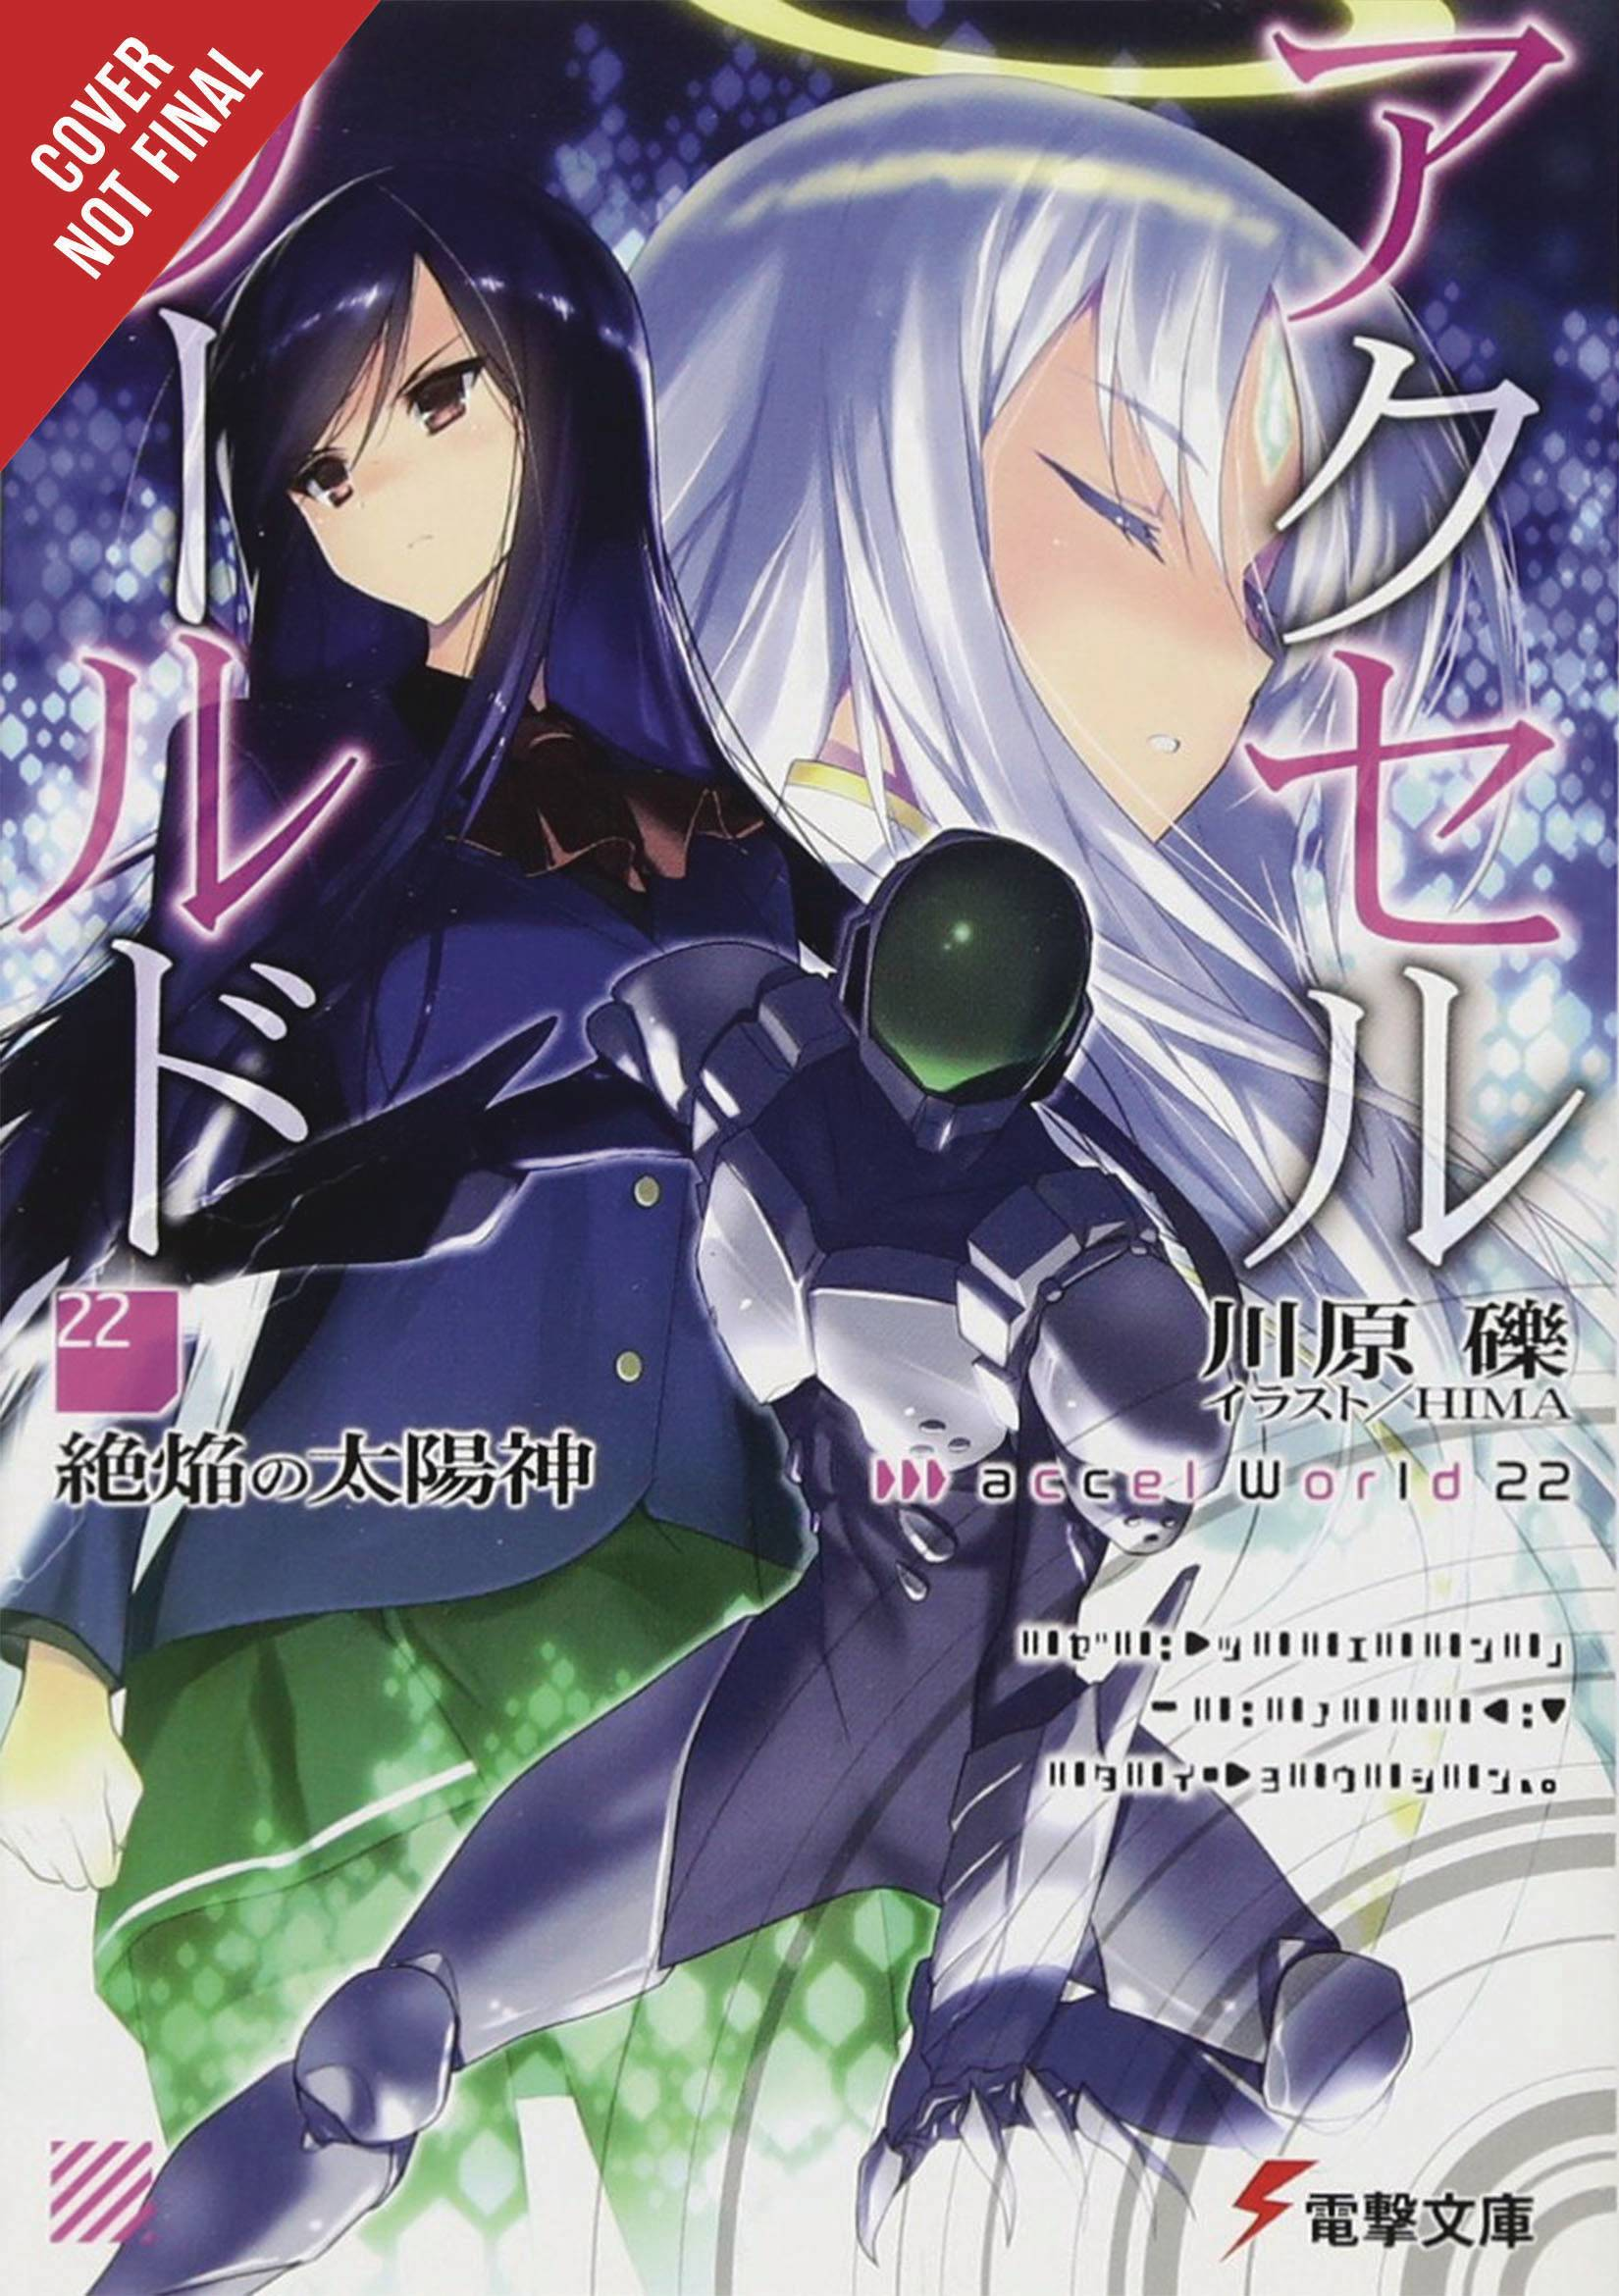 ACCEL WORLD LIGHT NOVEL SC 22